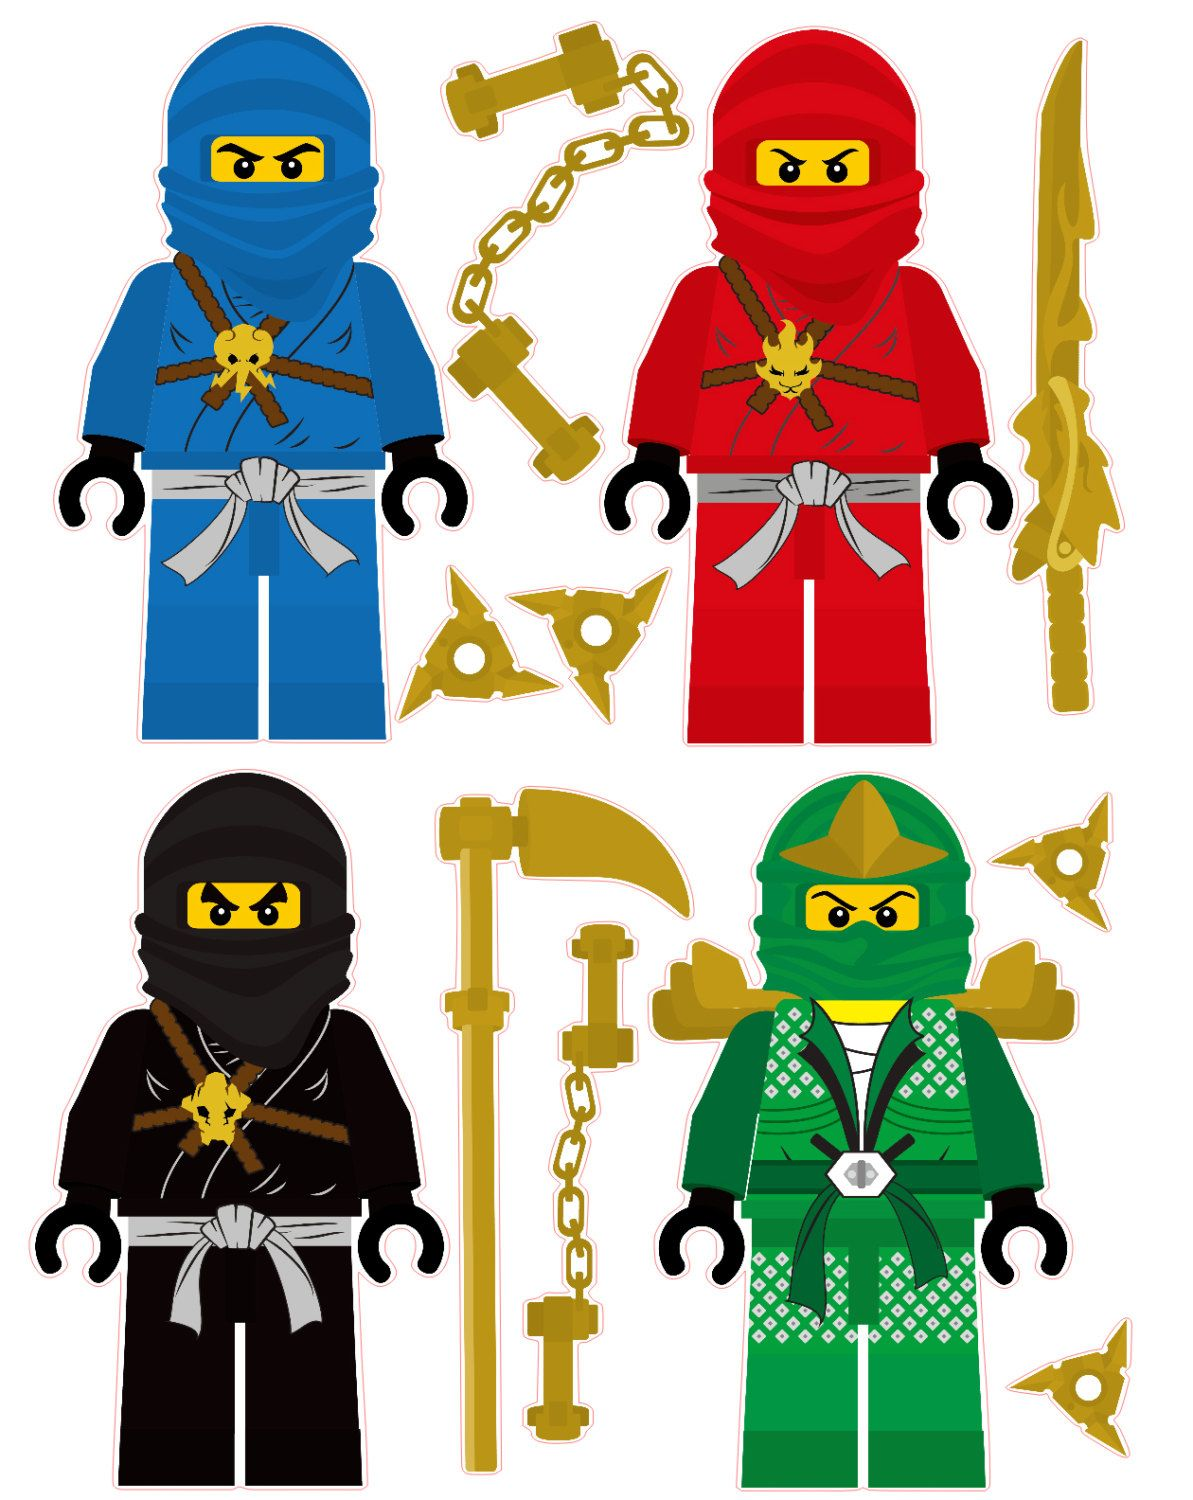 Lego Ninjago Ninjas Removable Wall Stickers Set With Free - How to make homemade lego decals